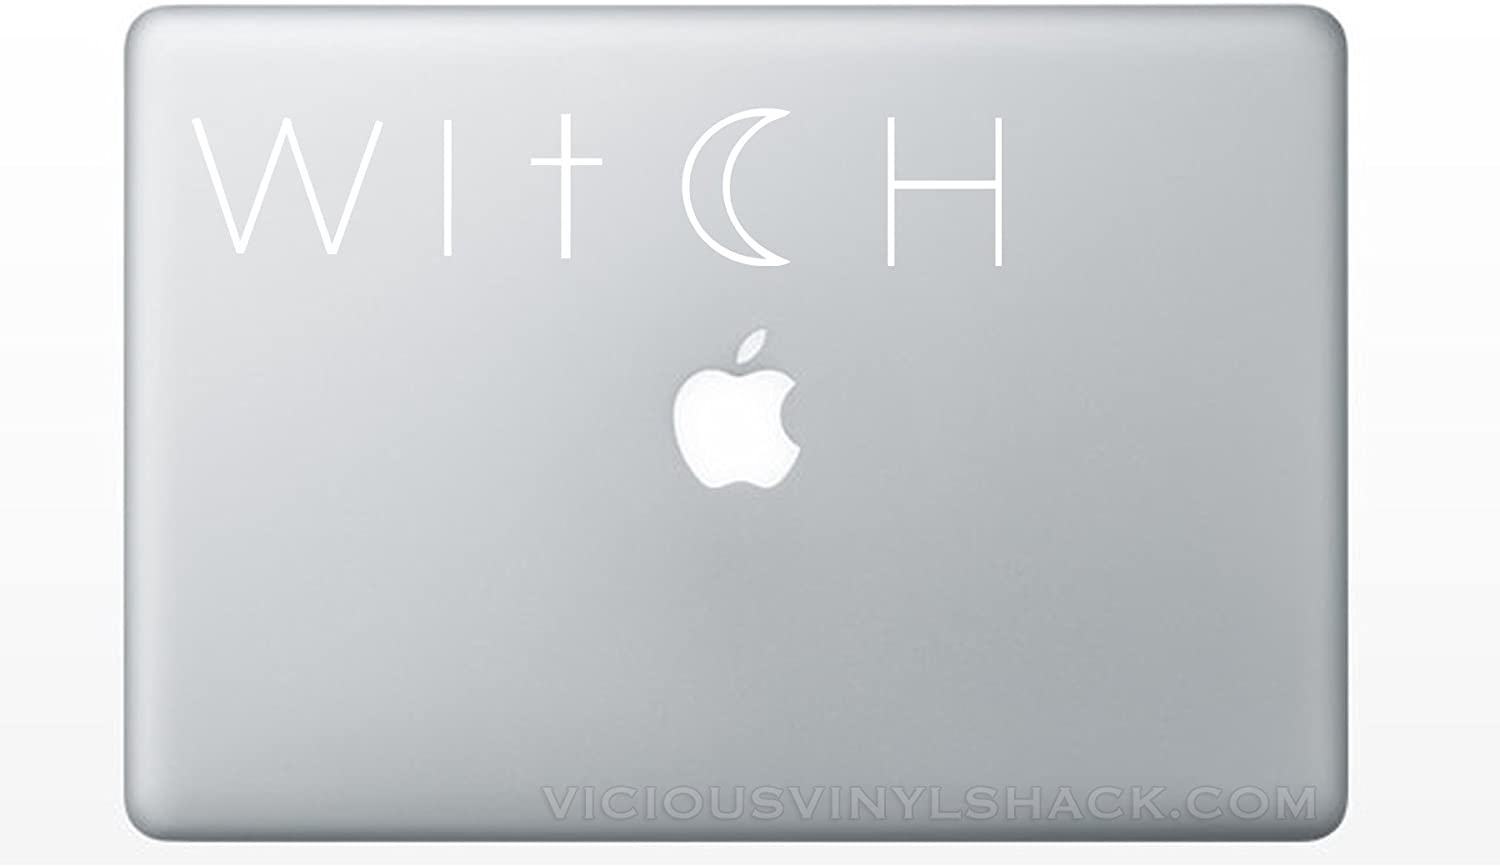 Witch Cross and Crescent Moon Quote Name (WHITE) Vinyl Decal Stickers for MacBook Laptop Car Love Forever Birds Always Relationships Feathers Magic Wicca Halloween Samhain Pagan